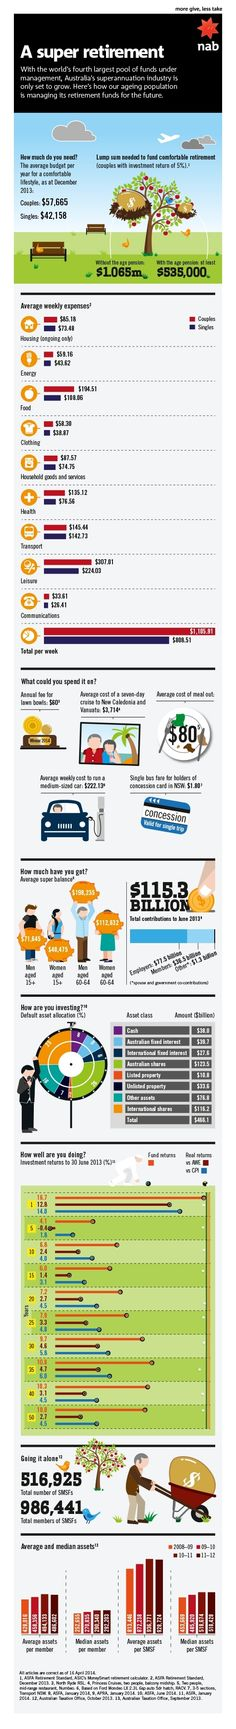 A Super Retirement - Infographic about the state of superannuation and retirement - from NAB